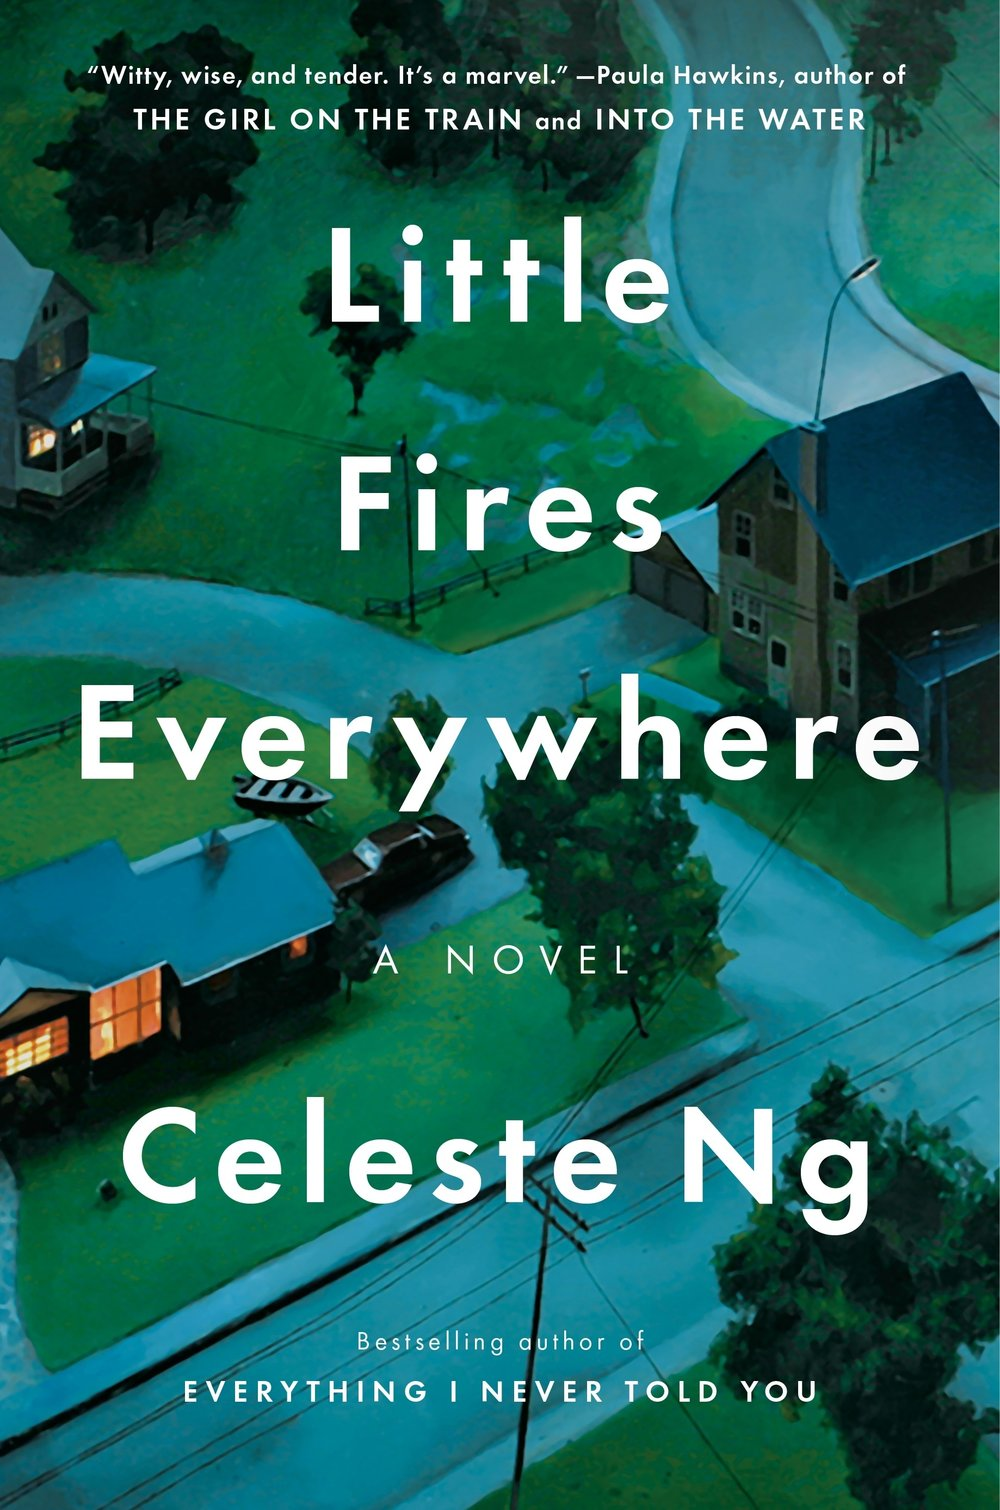 BSG #22: Speaking Up On Behalf of Brunch / Little Fires Everywhere - Come with us to the idyllic community of Shaker Heights, Ohio for our discussion of Little Fires Everywhere by Celeste Ng. We discuss whether the novel is character- or plot-driven, which characters were most effective, why the book is set in the 1990s, and more (like which of us were bitchy teenagers). Plus, we read some listener feedback on Goodbye, Vitamin, and Emily tells us about MyTBR, which you should definitely subscribe to. Hear about this month's featured bookstore, The Strand, and catch up on what's on the #BookSquadBlog. Read along with us for our next #bookpisode on Girls Burn Brighter by Shobha Rao and tune in on 12/17 for our Best of 2018 #othersode!